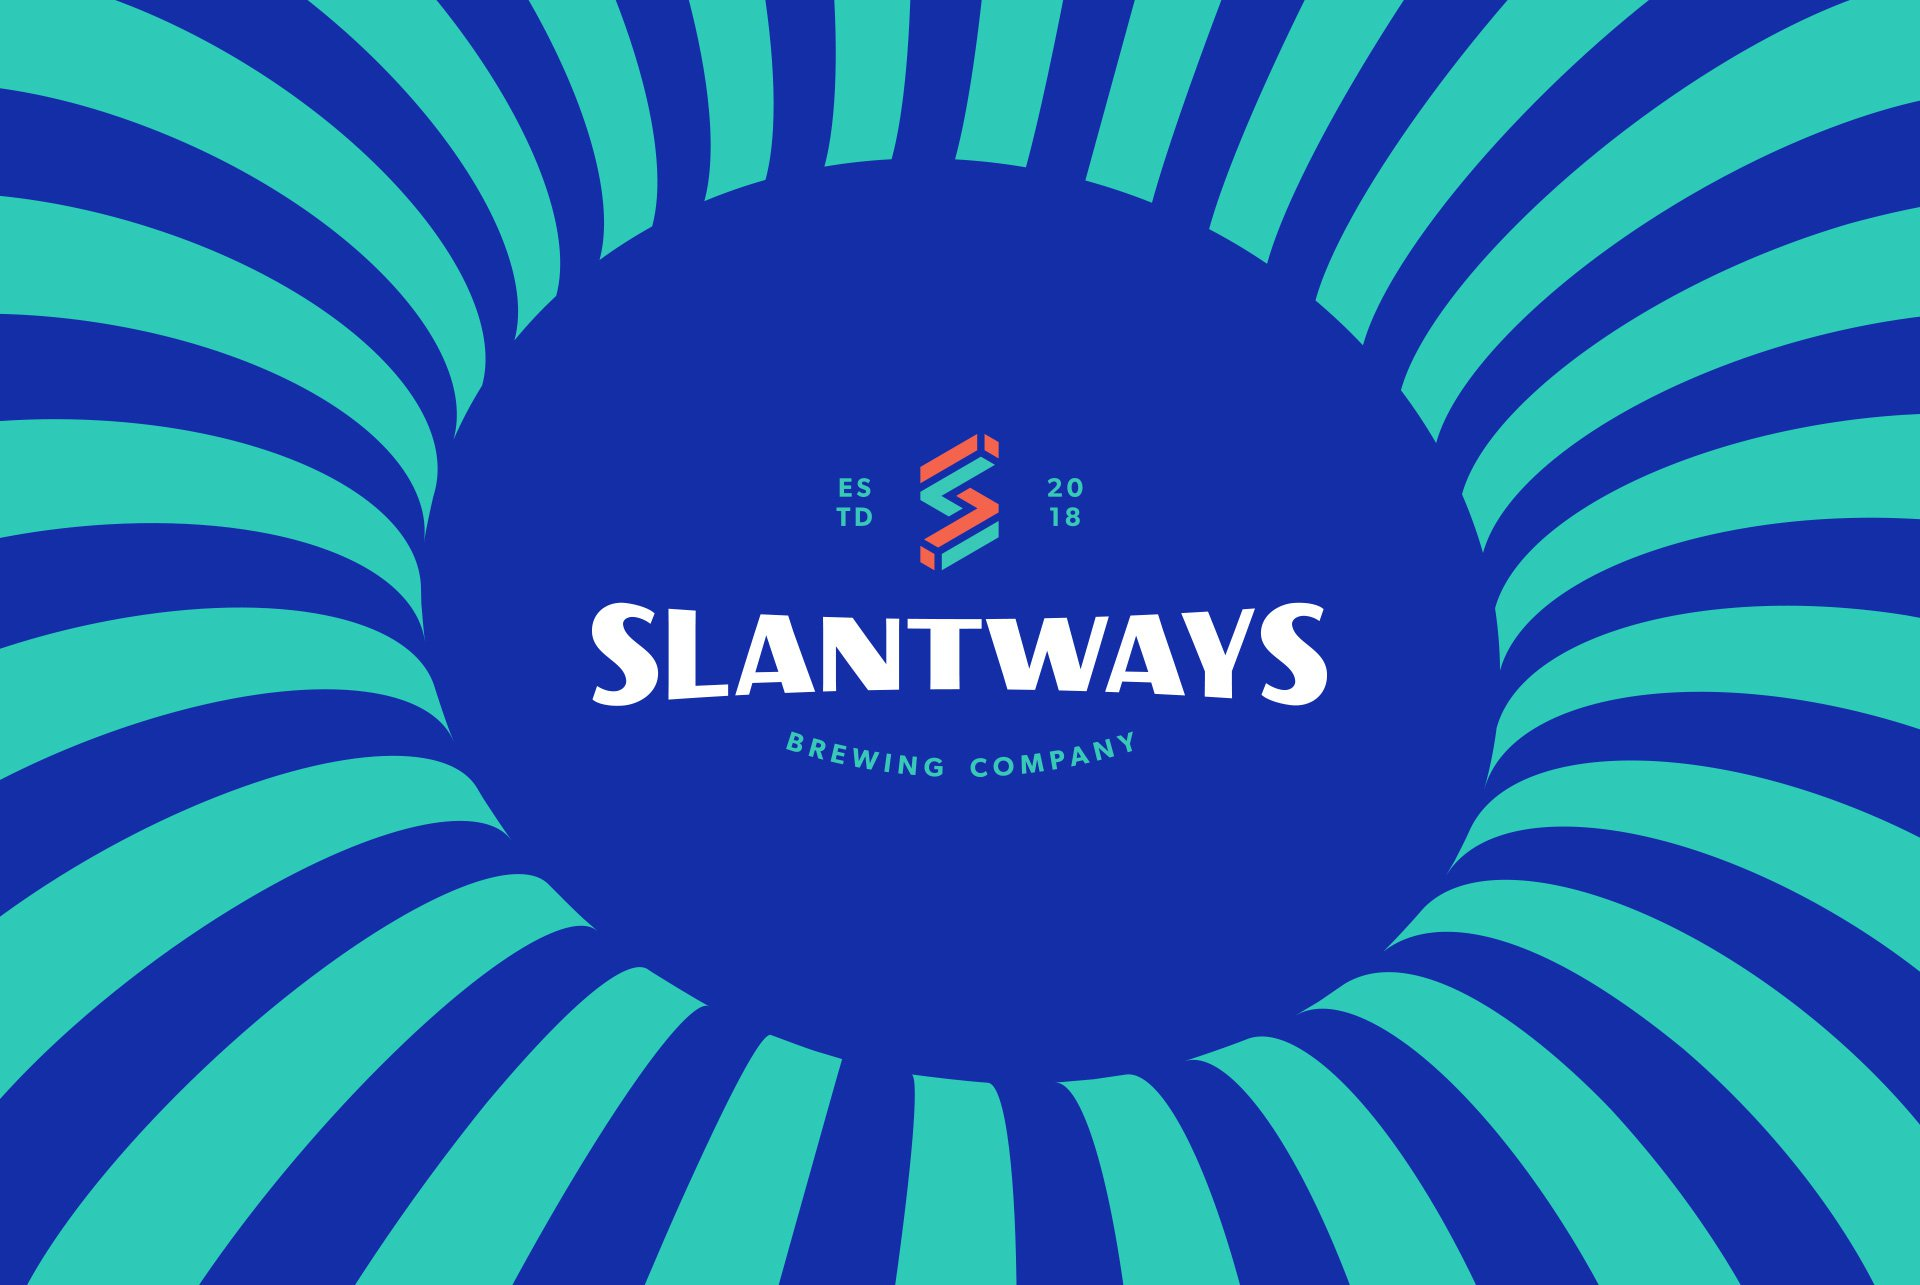 Slantways Brewing Company